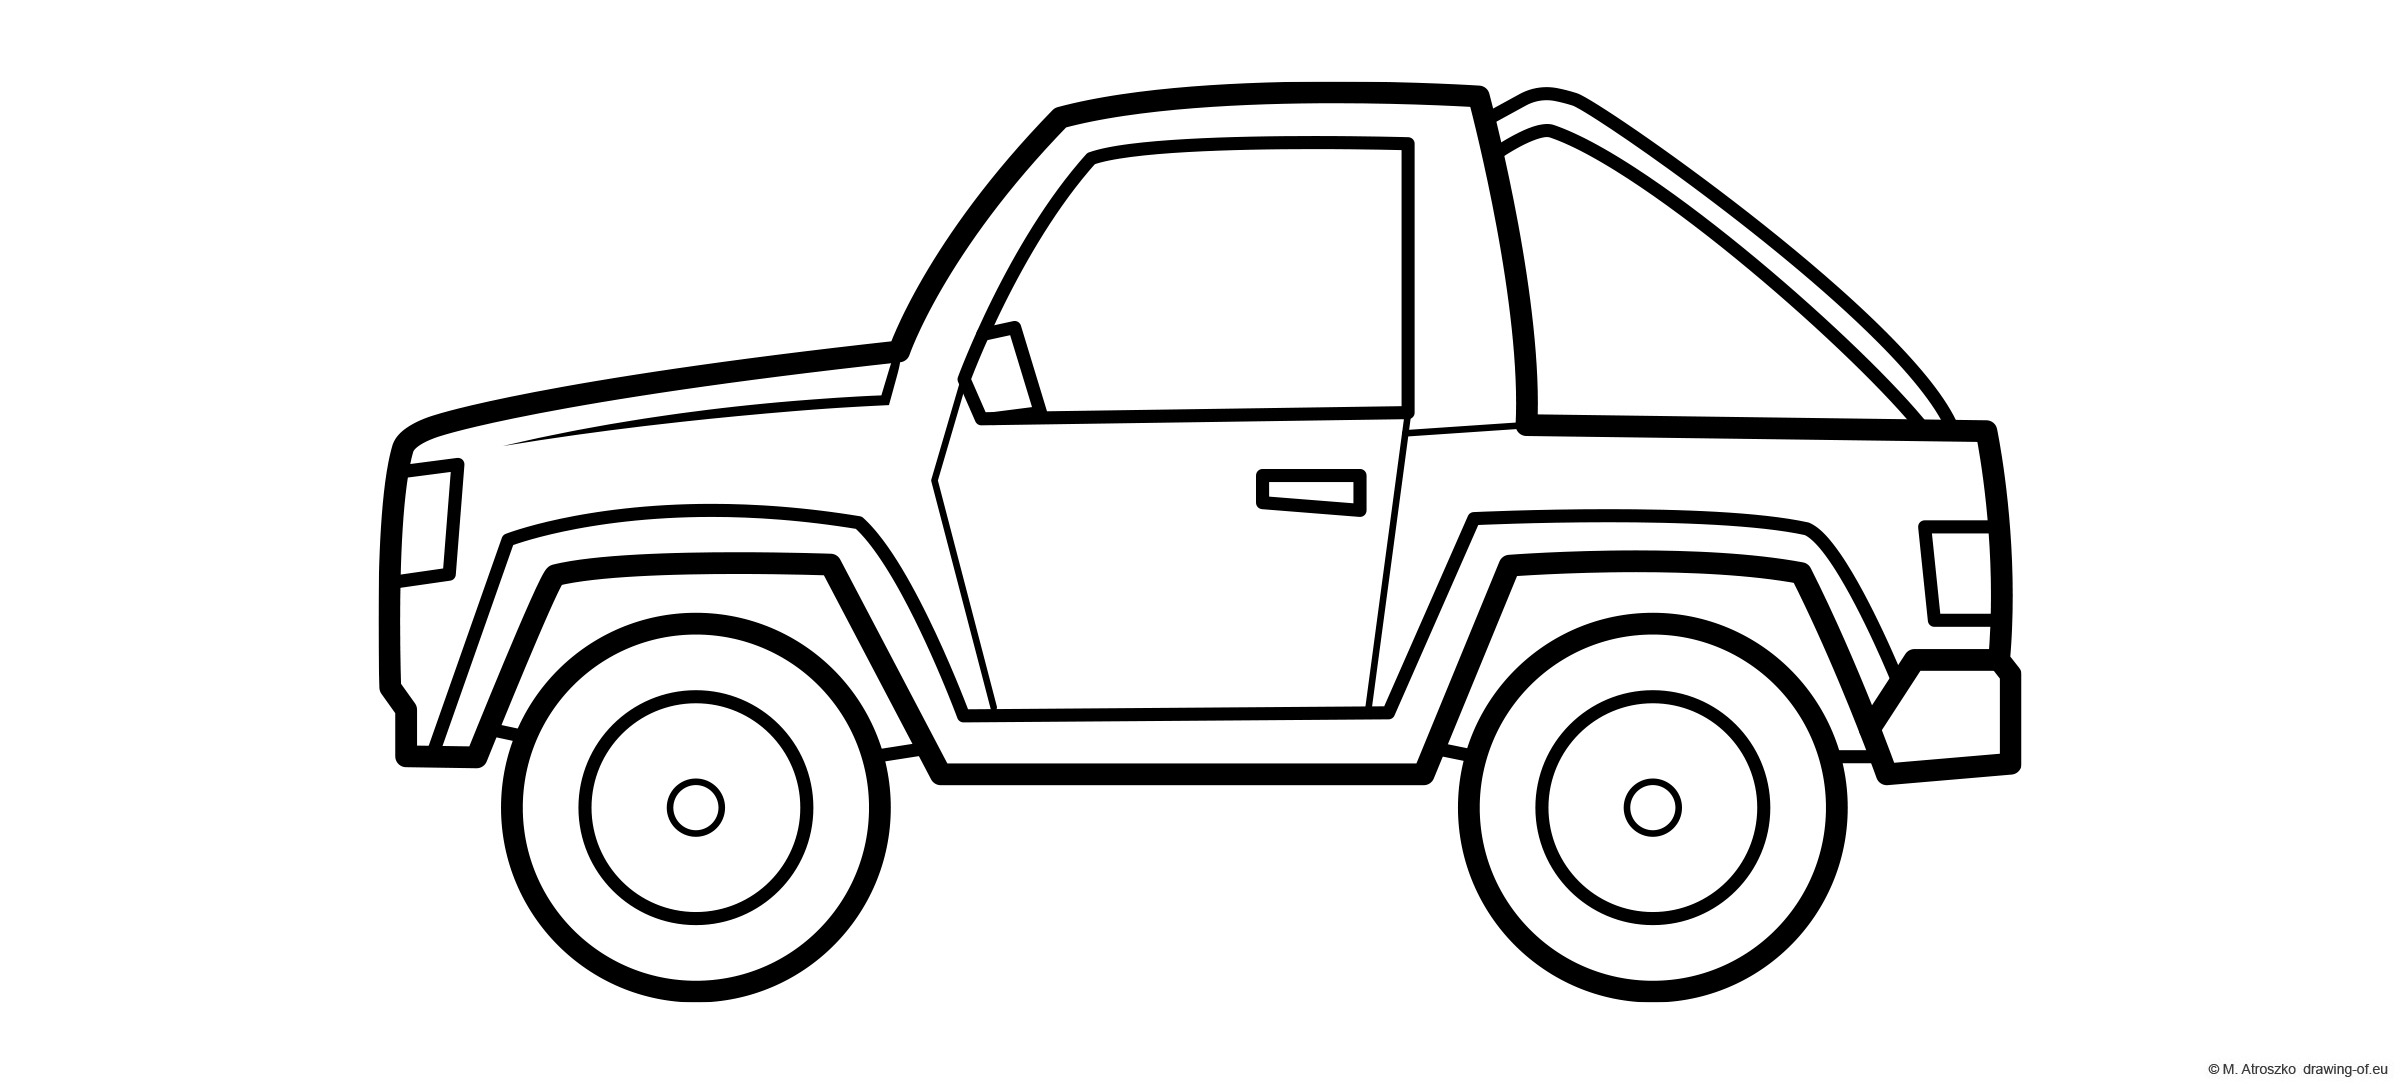 4x4 car - jeep coloring page